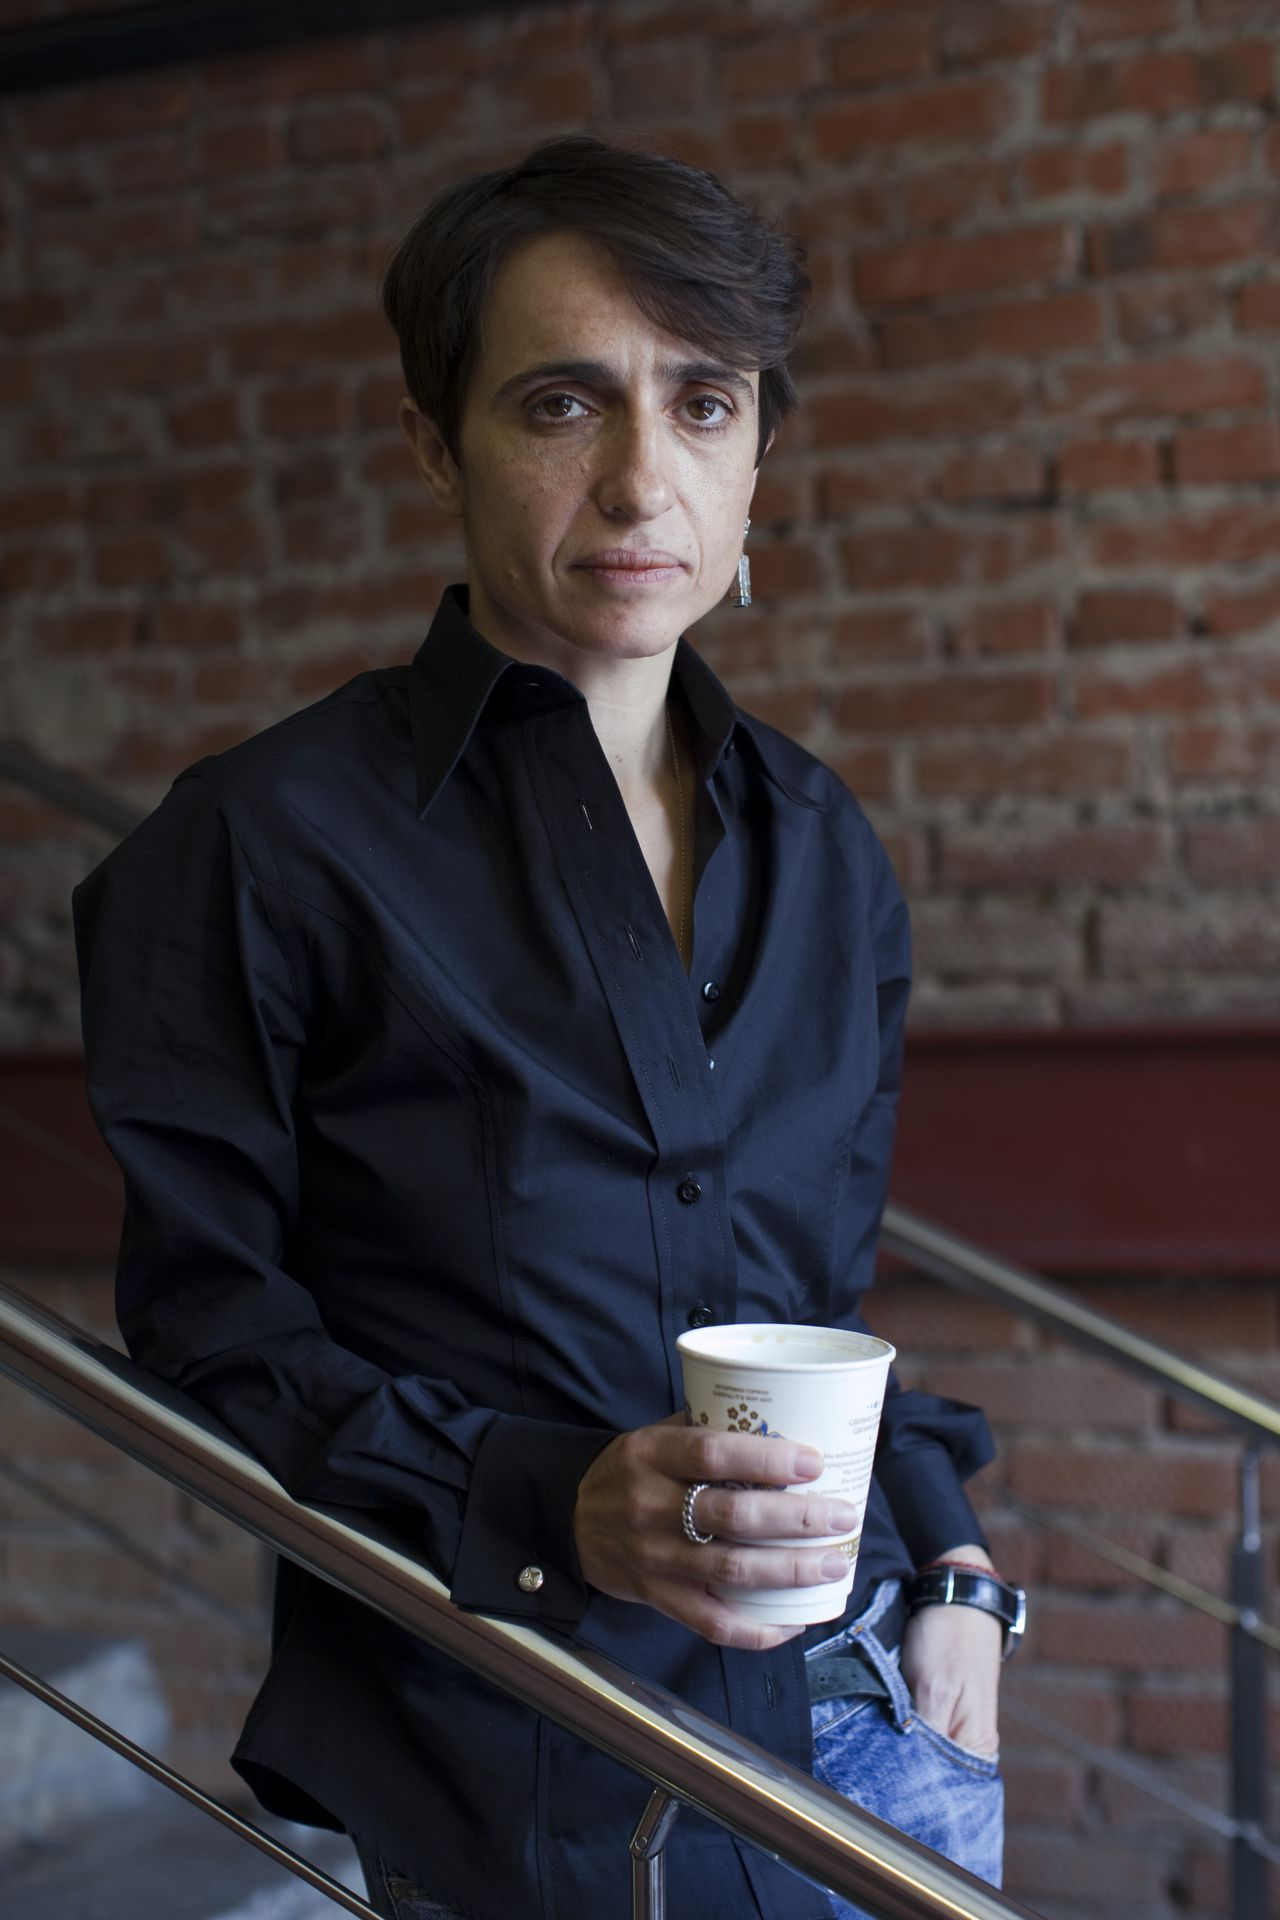 Moscow, Russia, 17/02/2011. Editor Masha Gessen at Snob magazine in their offices in a converted army factory. Photo: Jeremy Nicholl / Hollandse Hoogte Uit serie: Snob Magazine (40x)